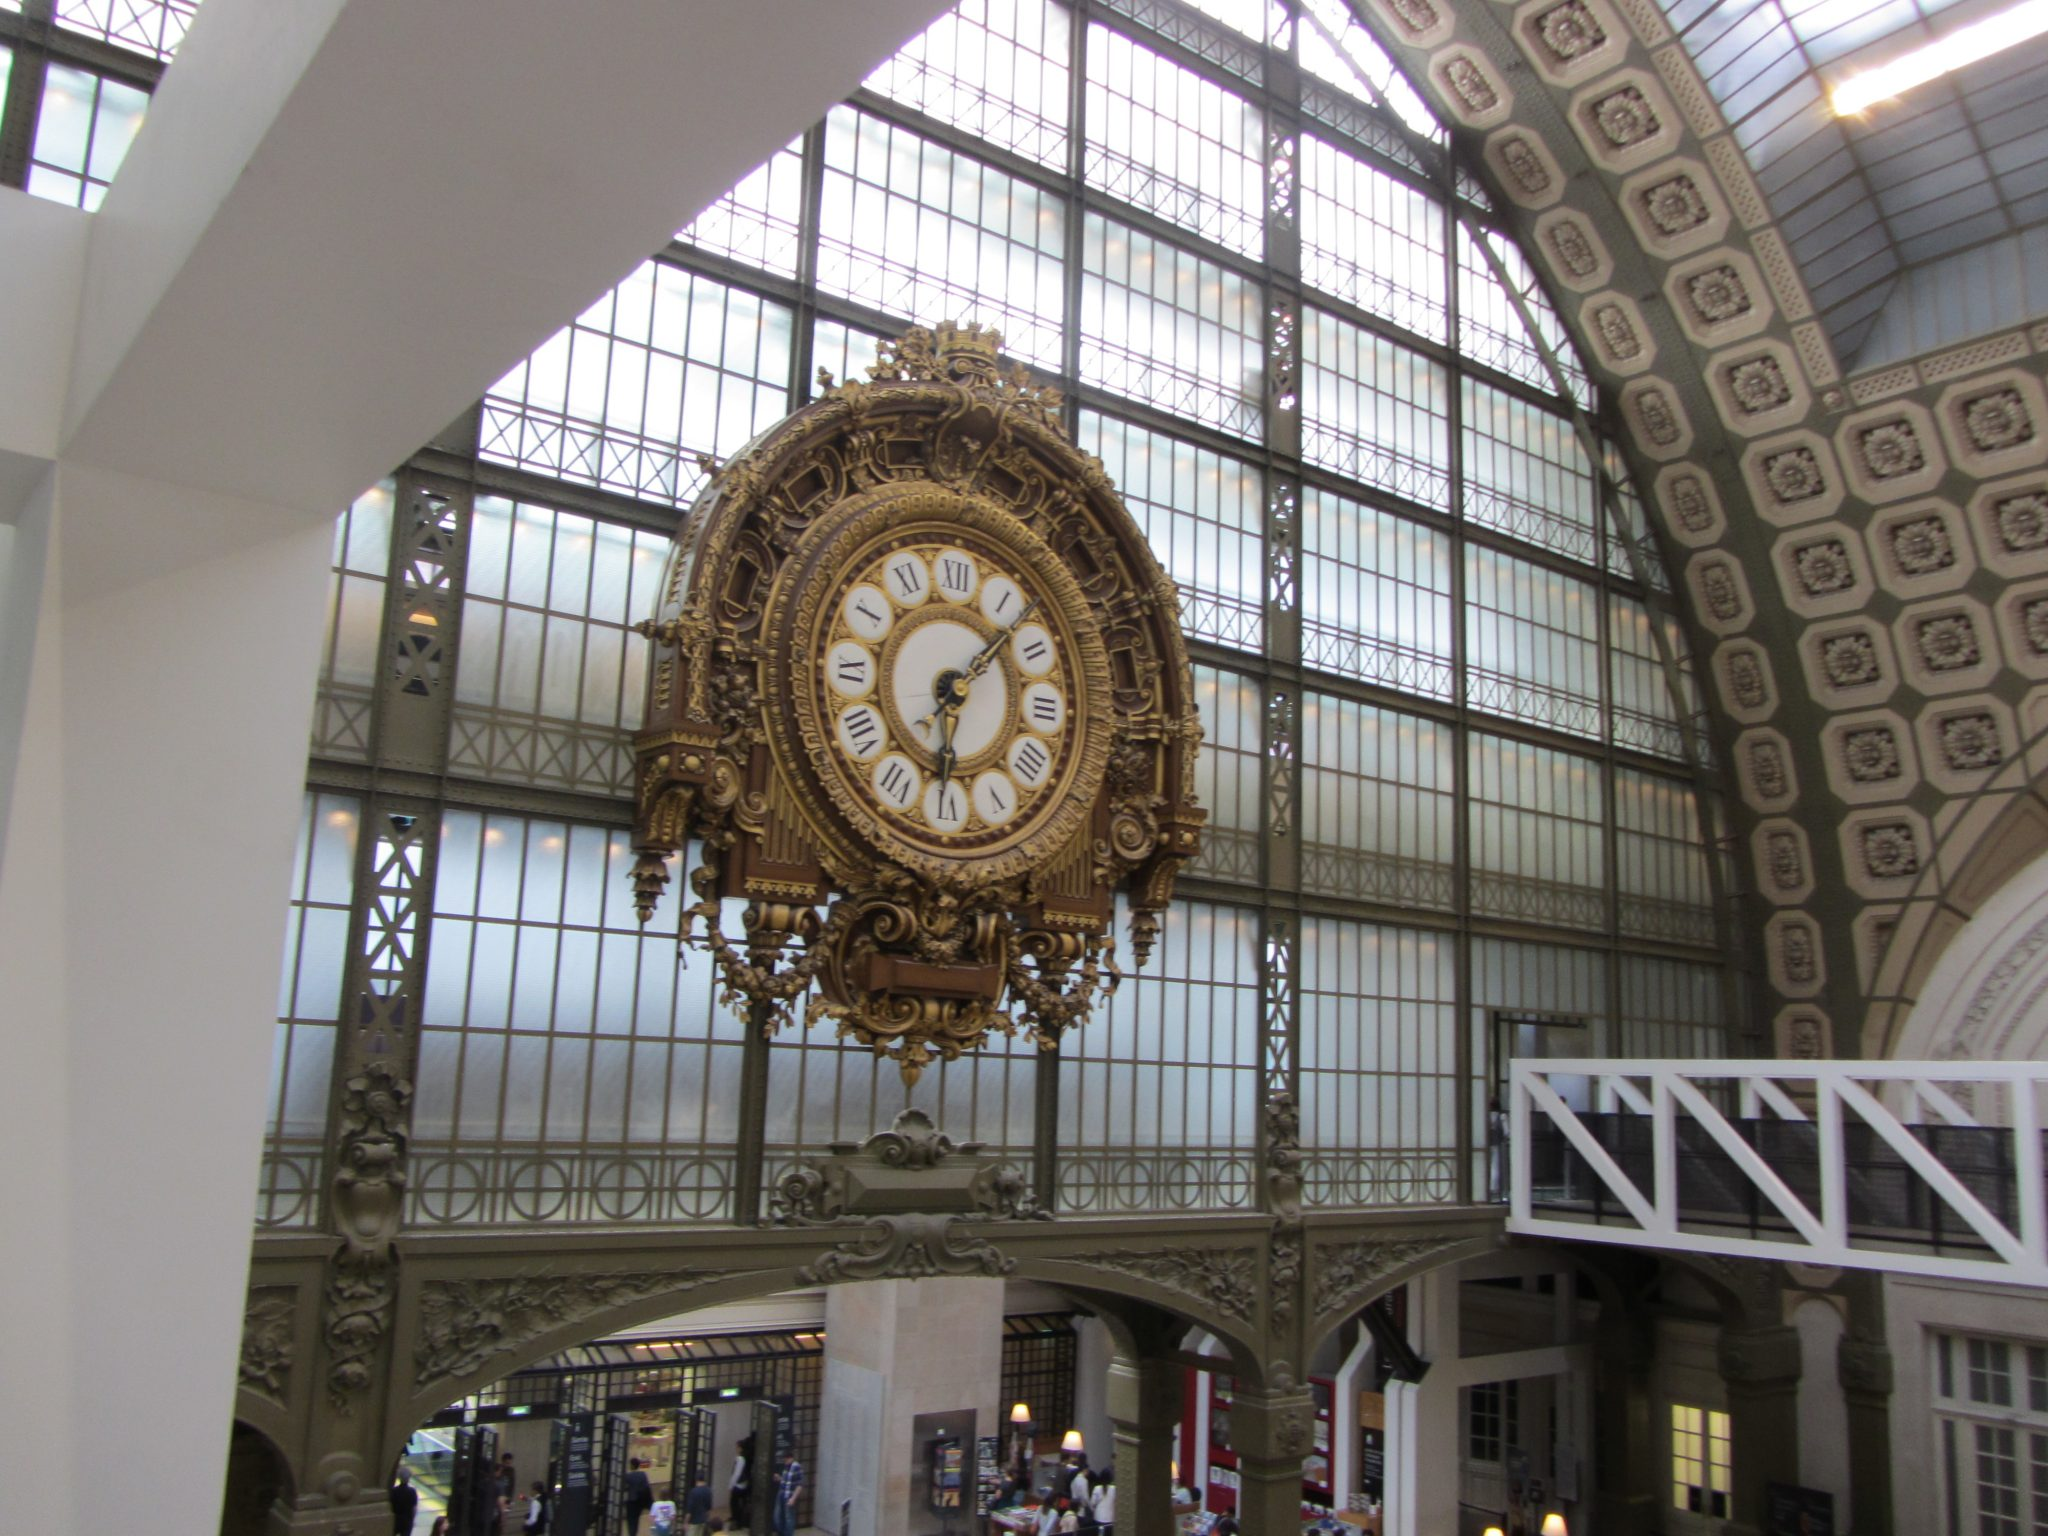 The Wall of Windows and Big Clock Looking Into the Main Hall at the Muse d'Orsay in Paris